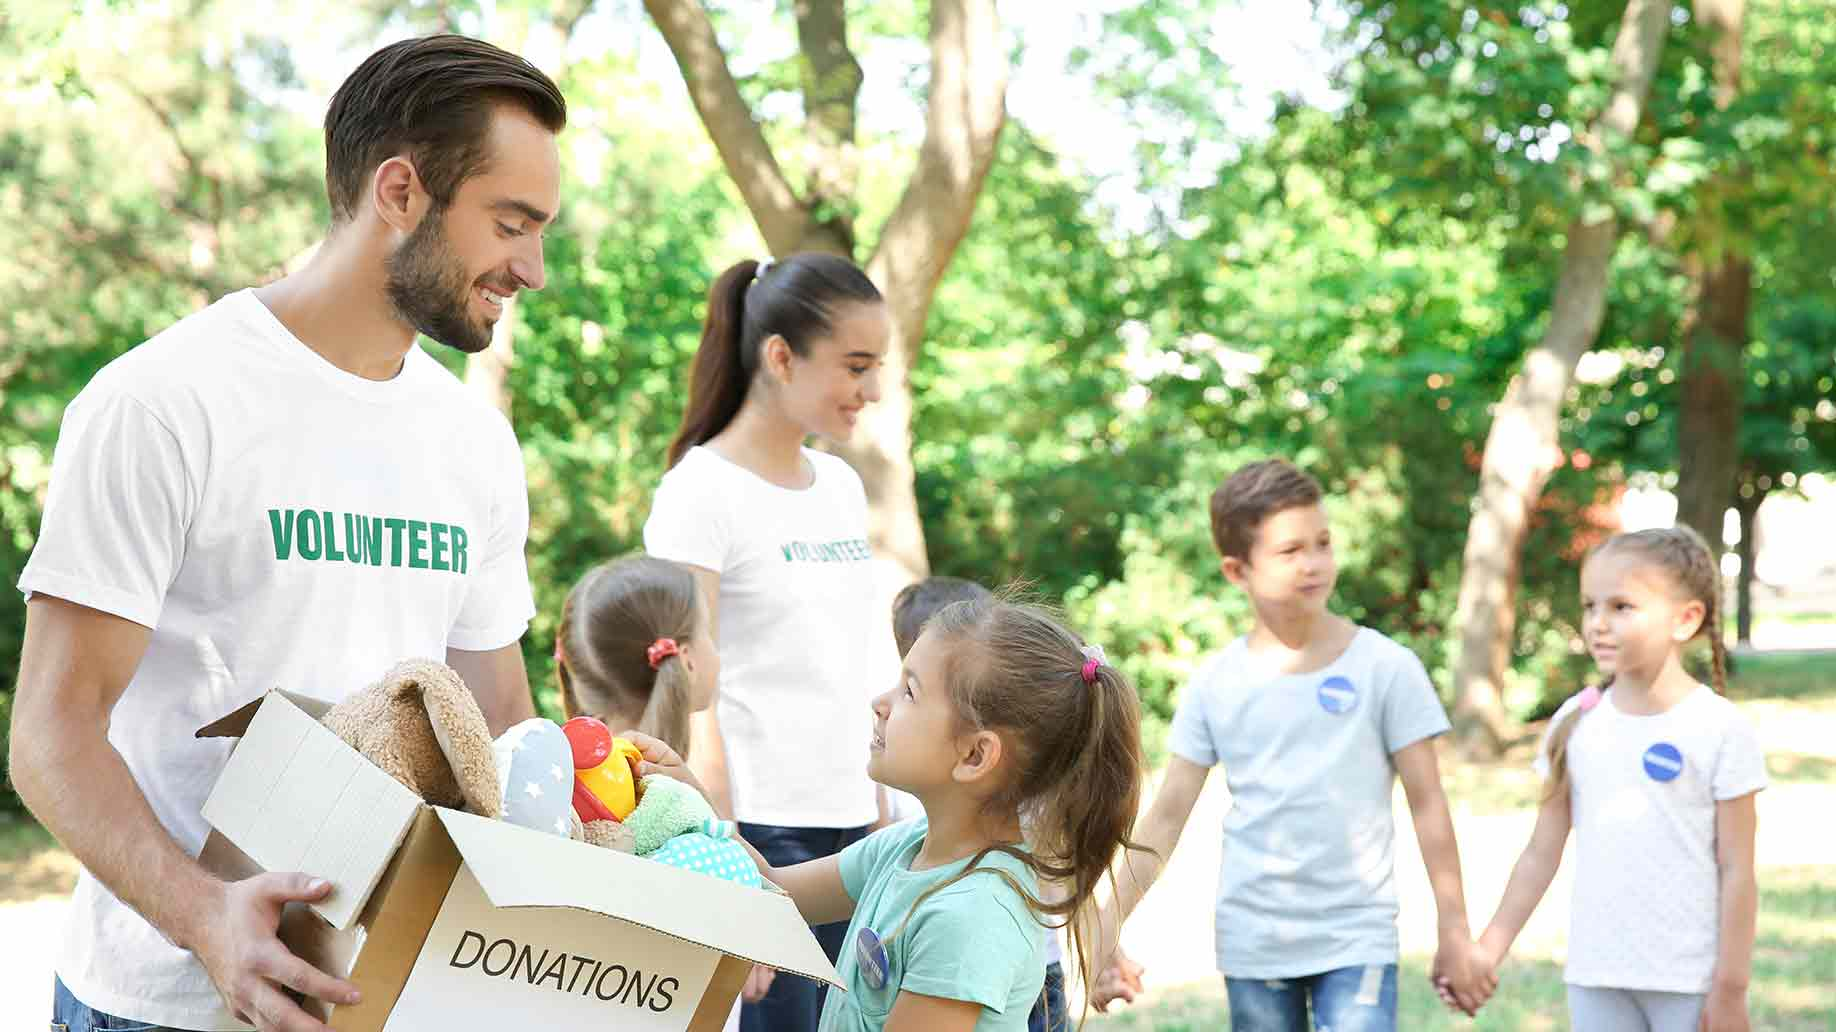 young volunteers children box donations outdoors